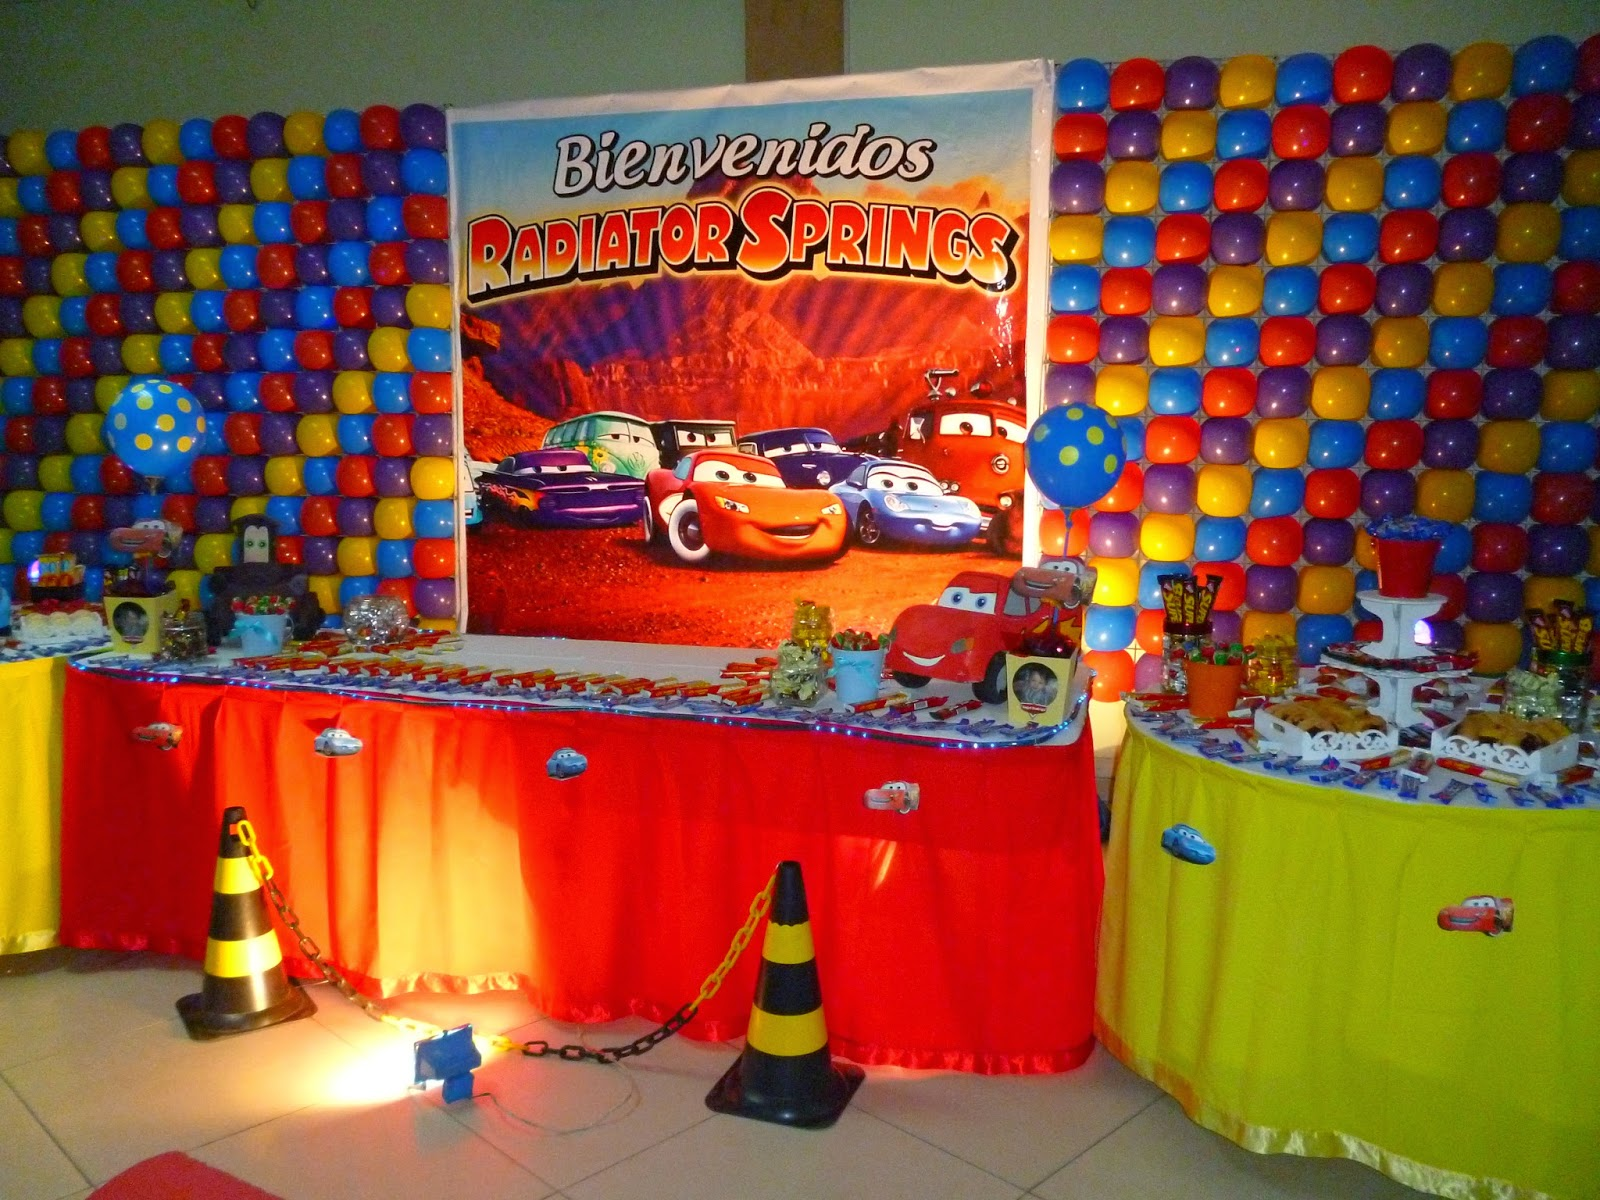 Fiestas personalizadas ideas de decoraci n de fiesta - Ideas decoracion fiestas ...